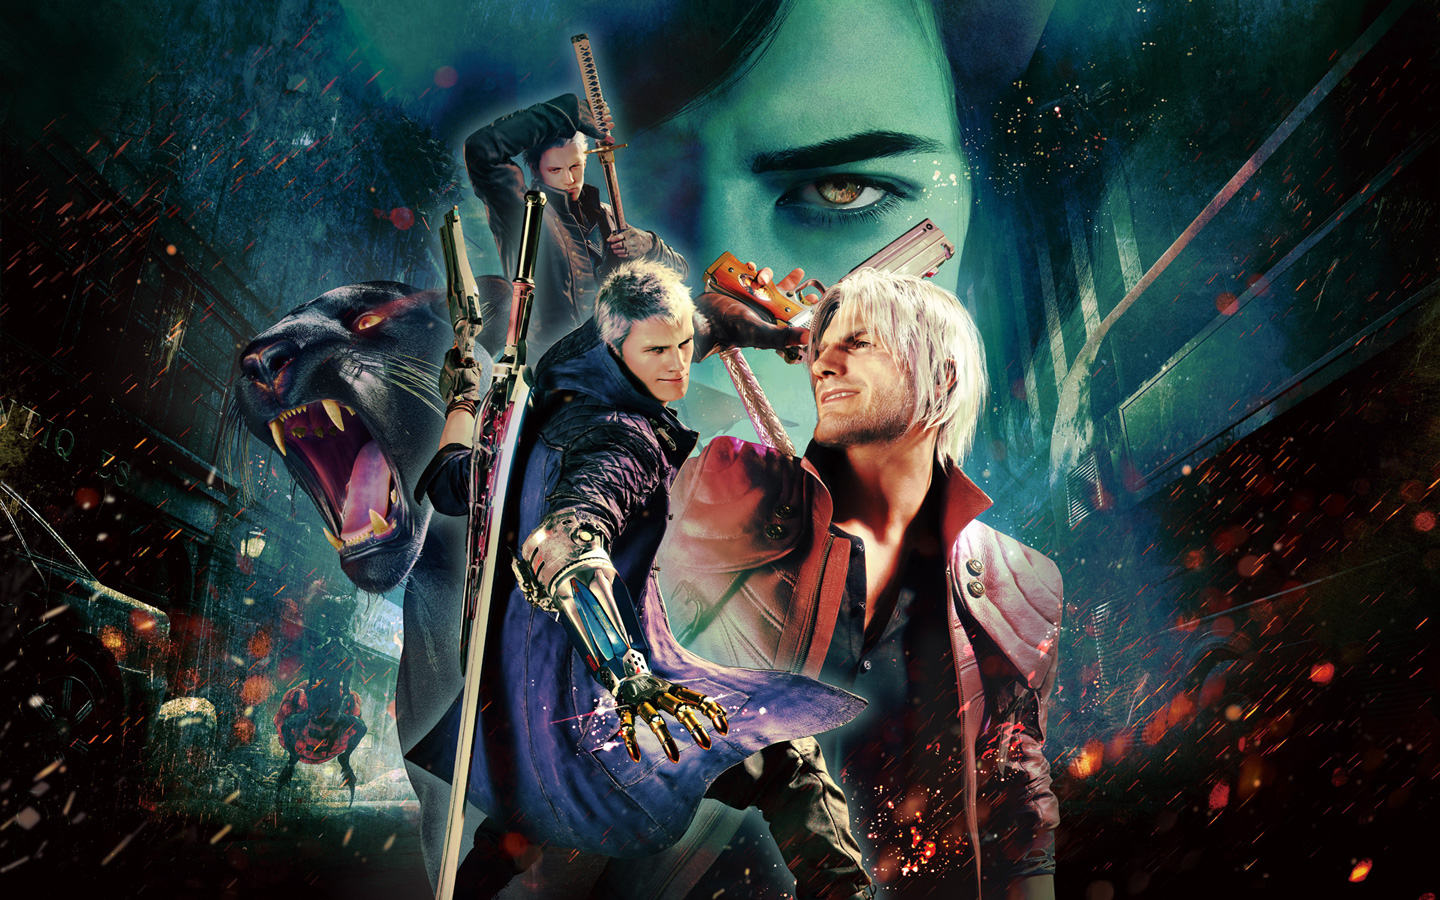 Devil May Cry 5 Wallpaper in 1440x900